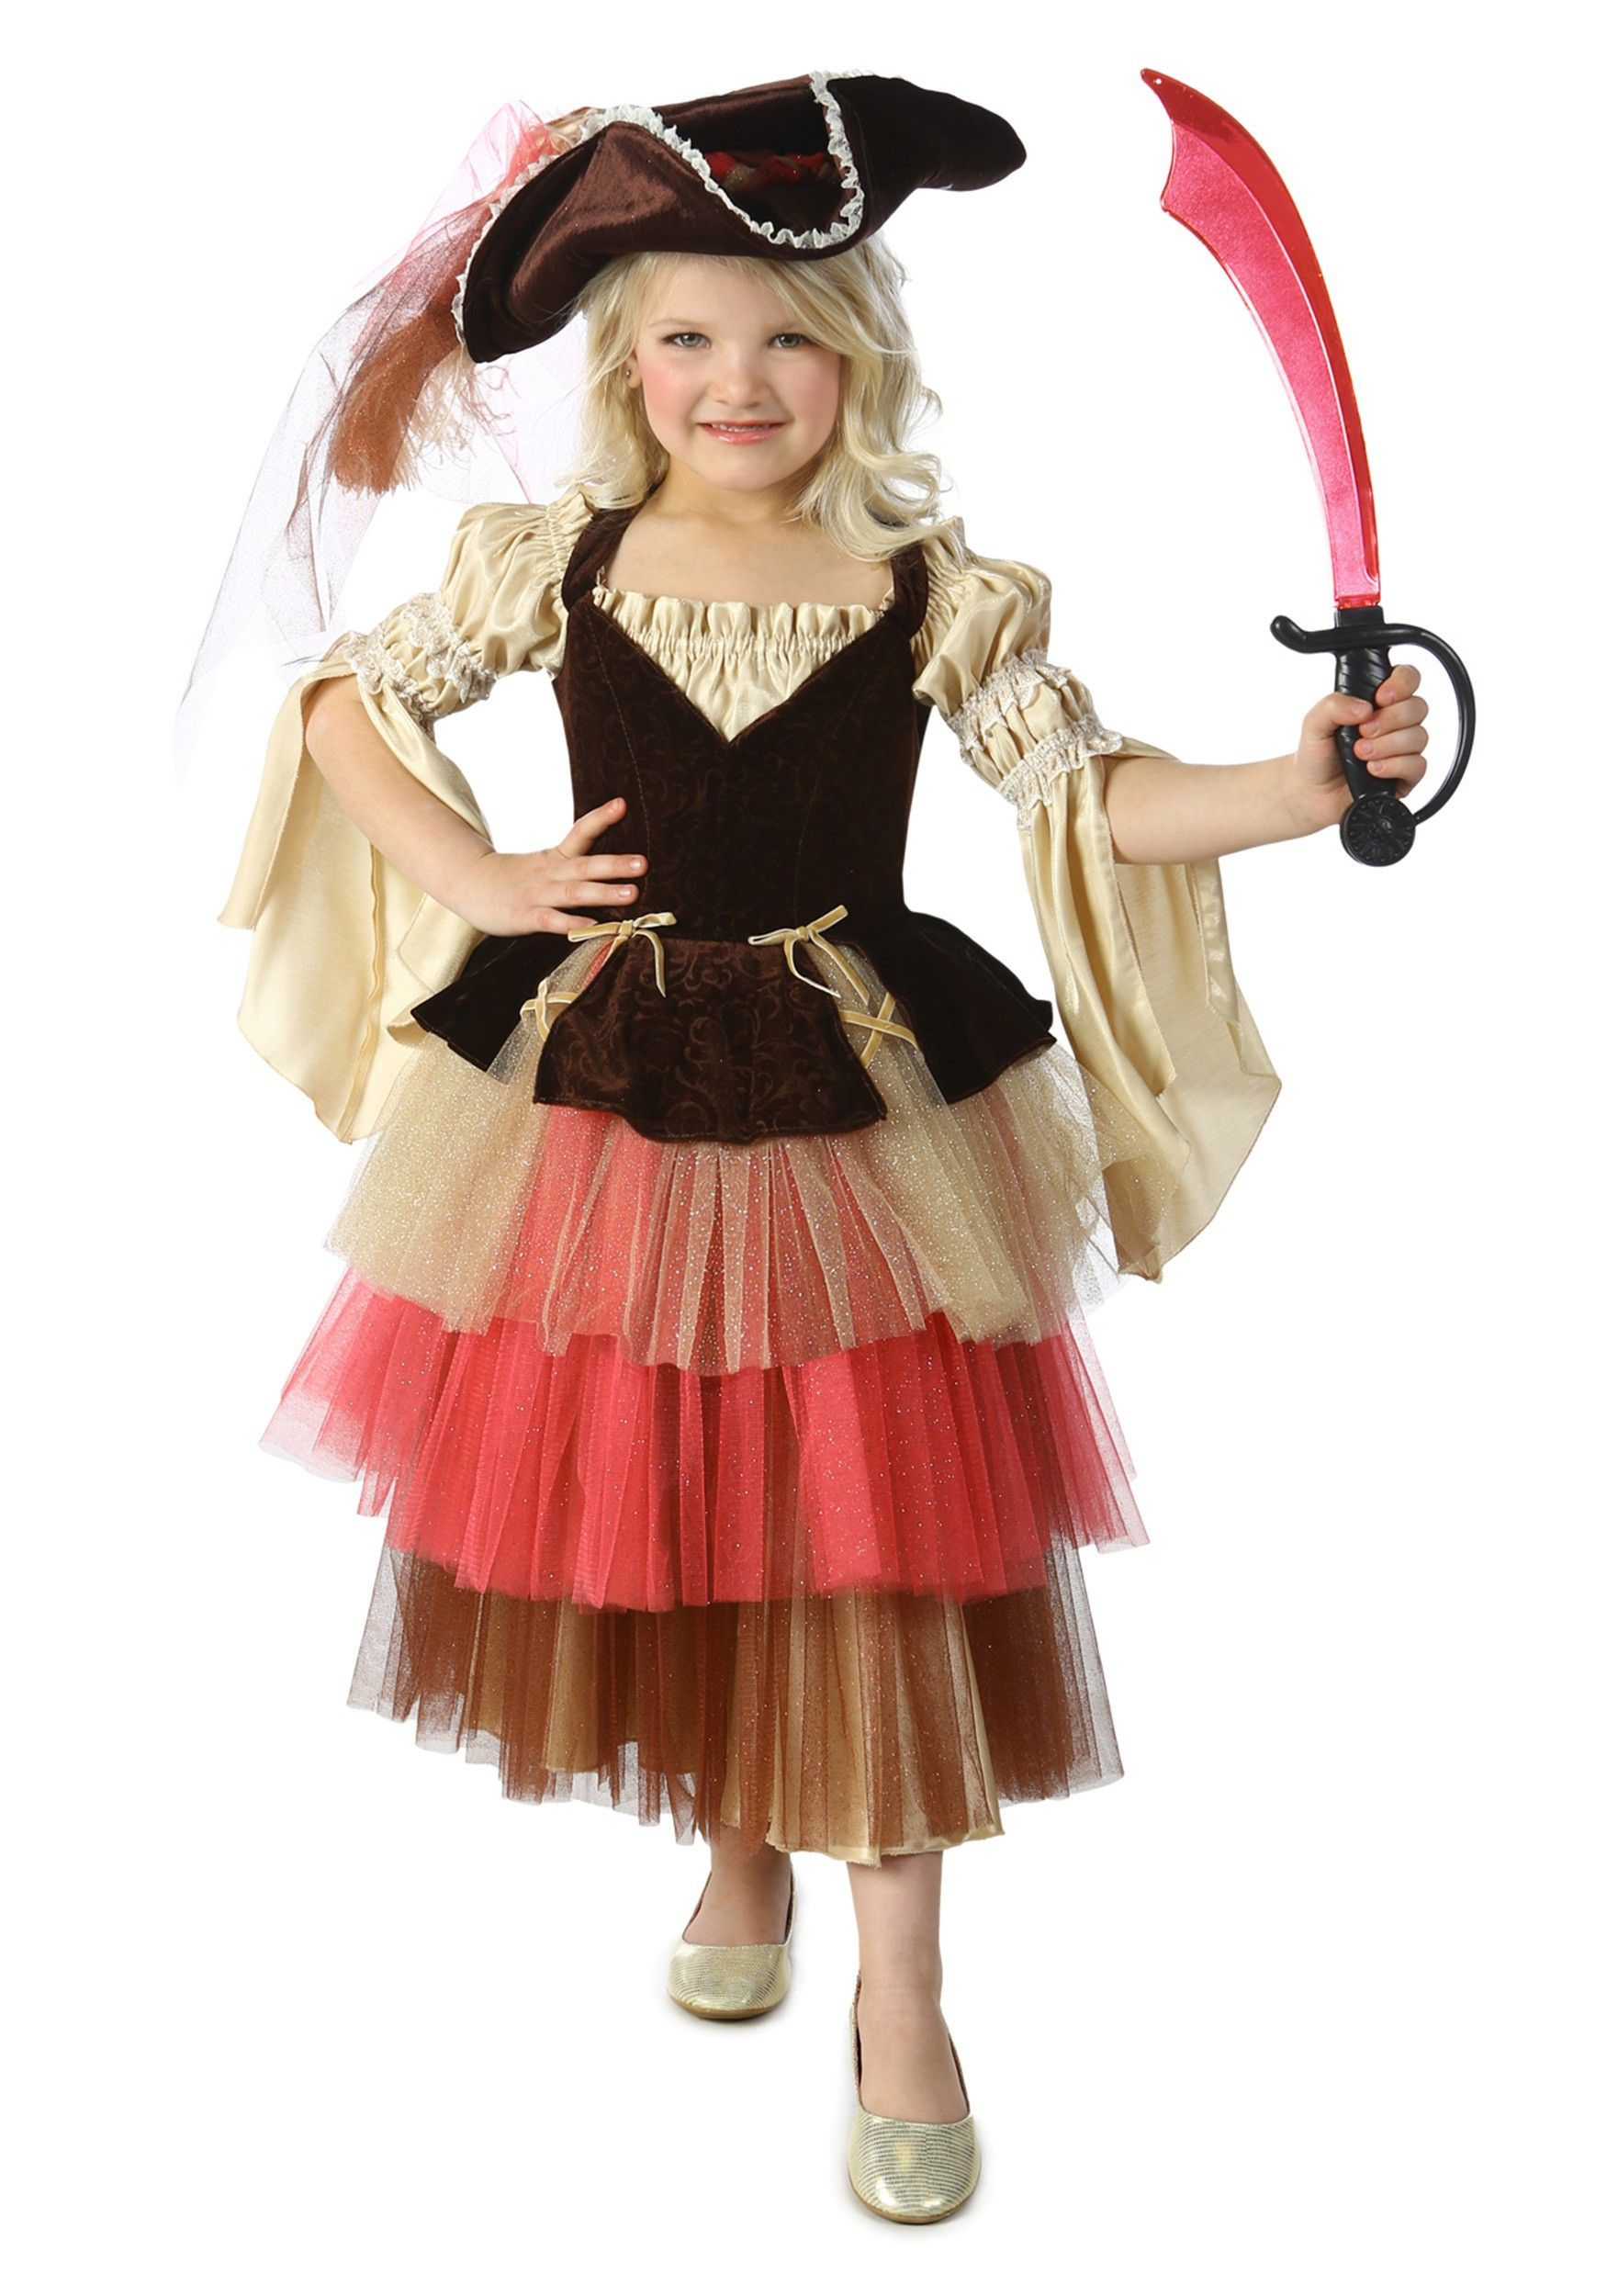 Child's Audrey the Pirate Costume | Children s, Costumes and ...